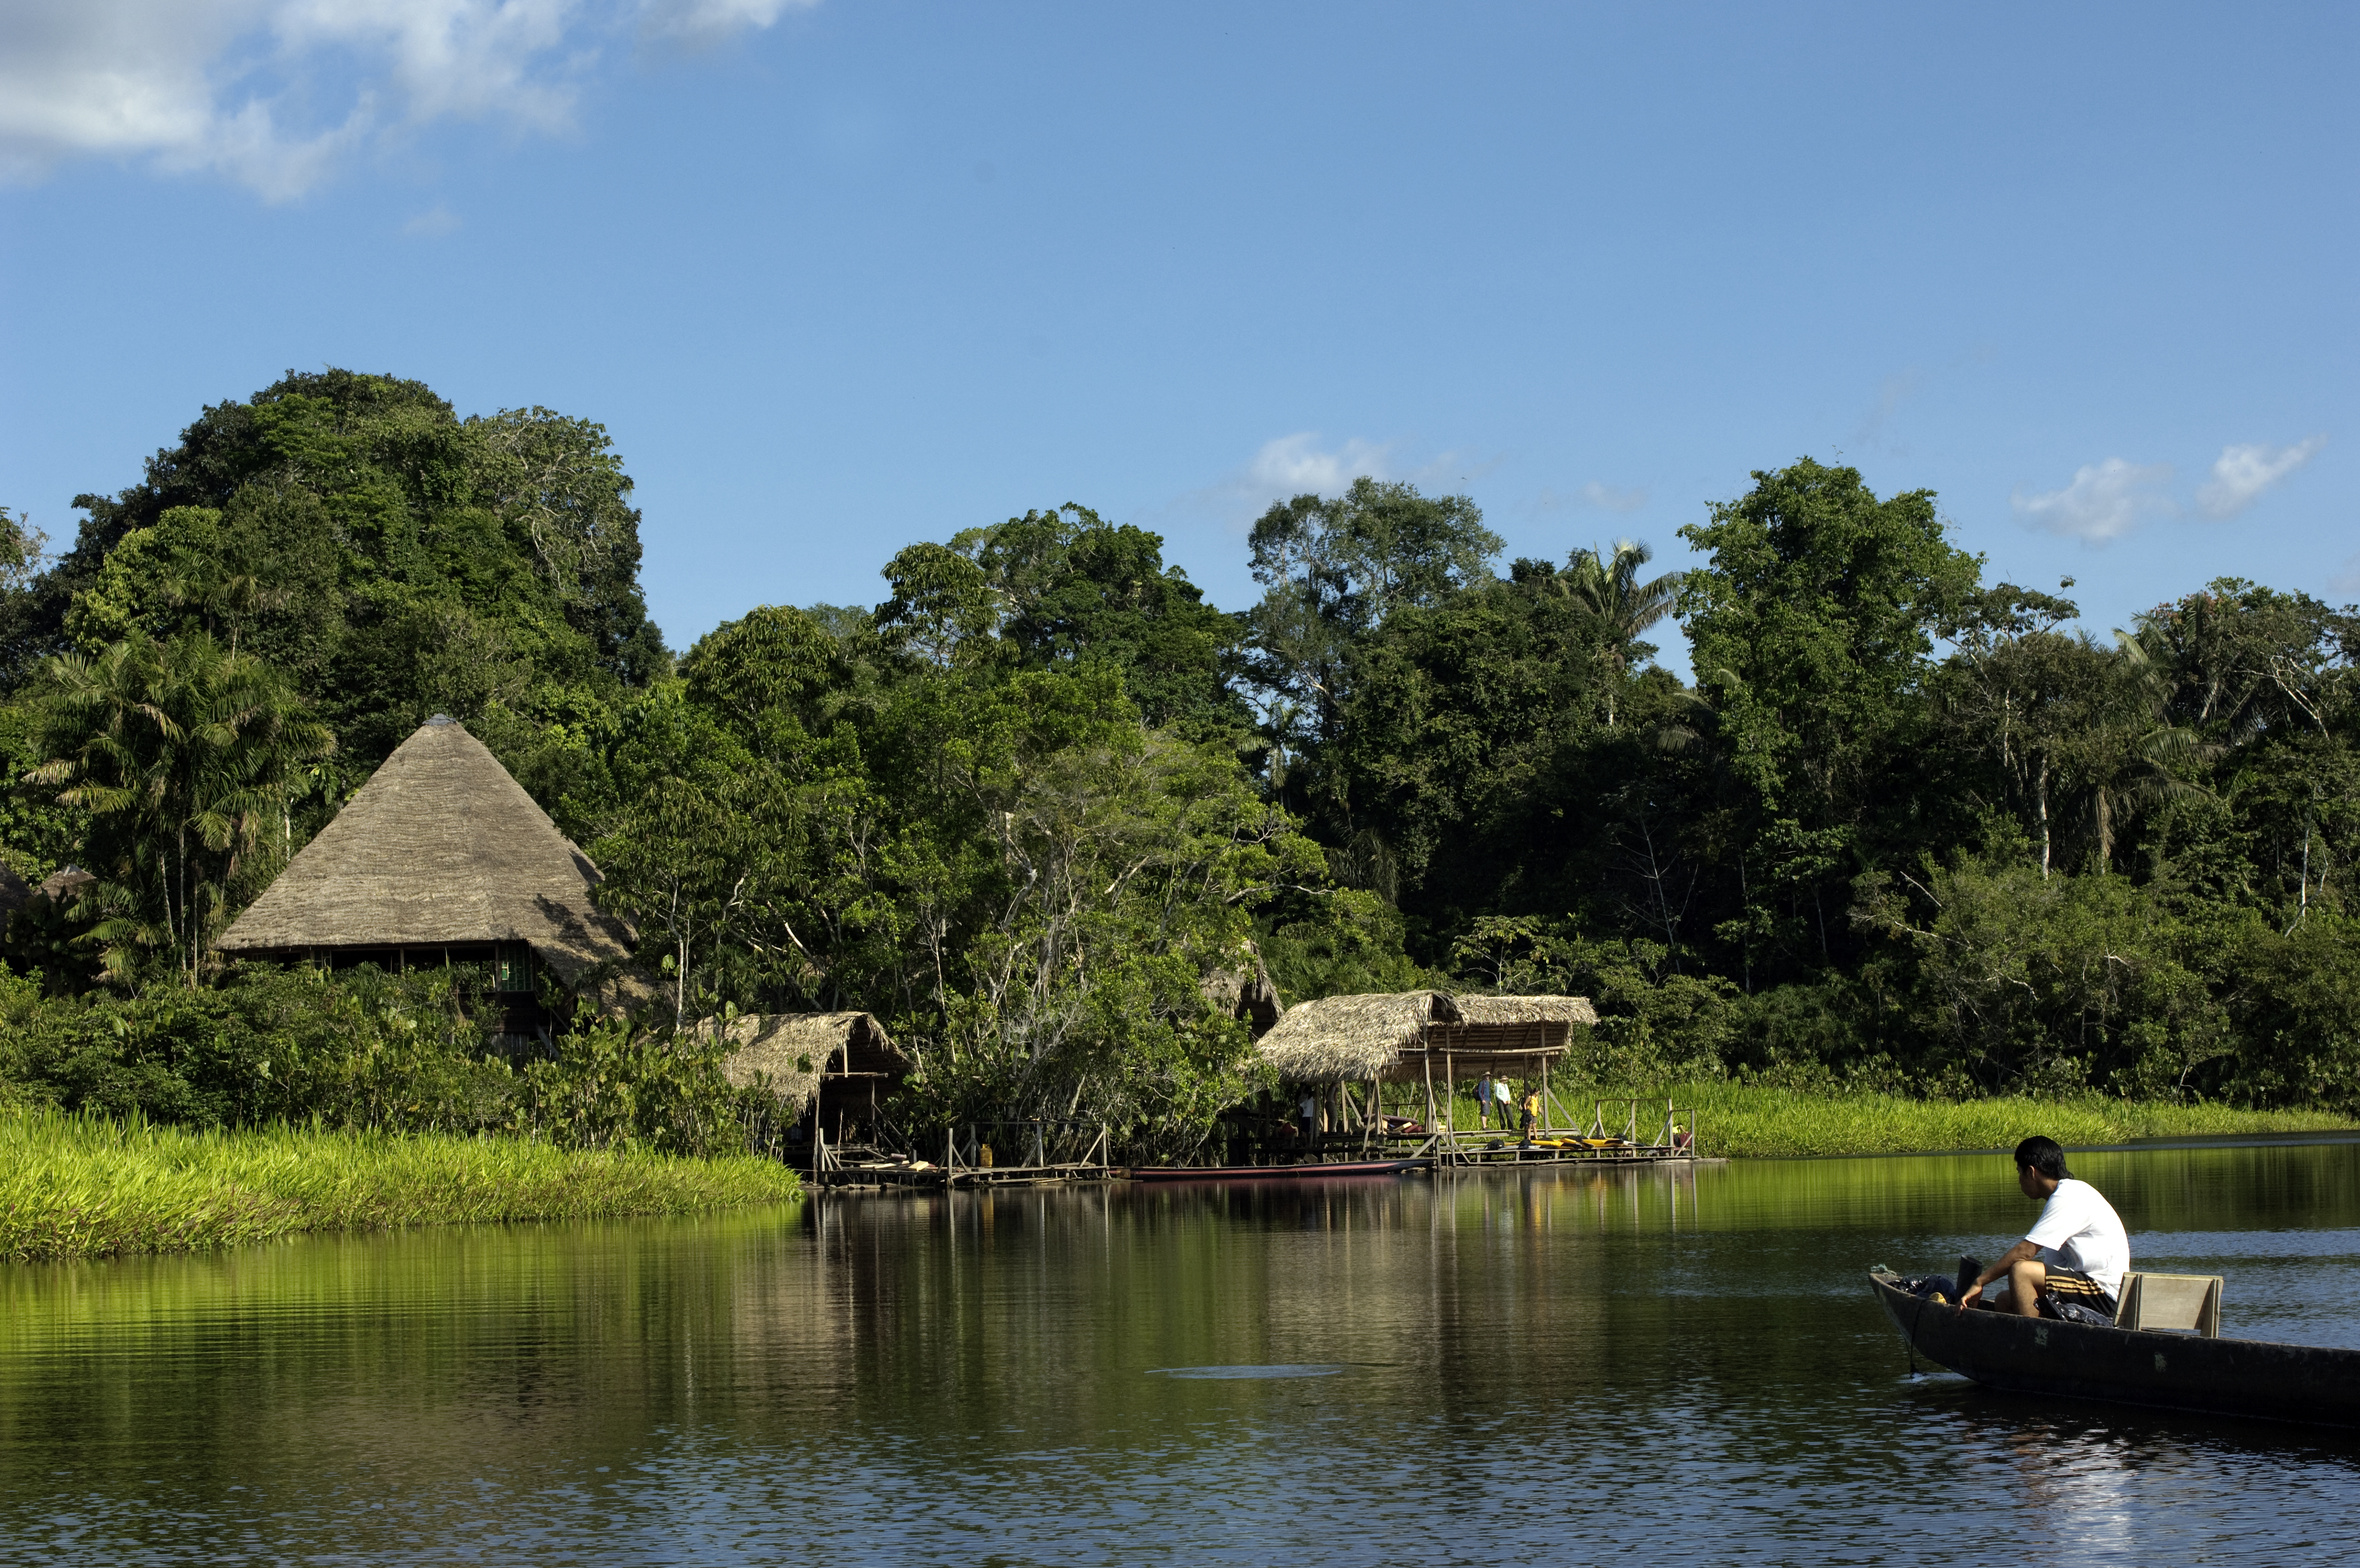 Top 10 Facts About The Amazon Rainforest The Inside Track